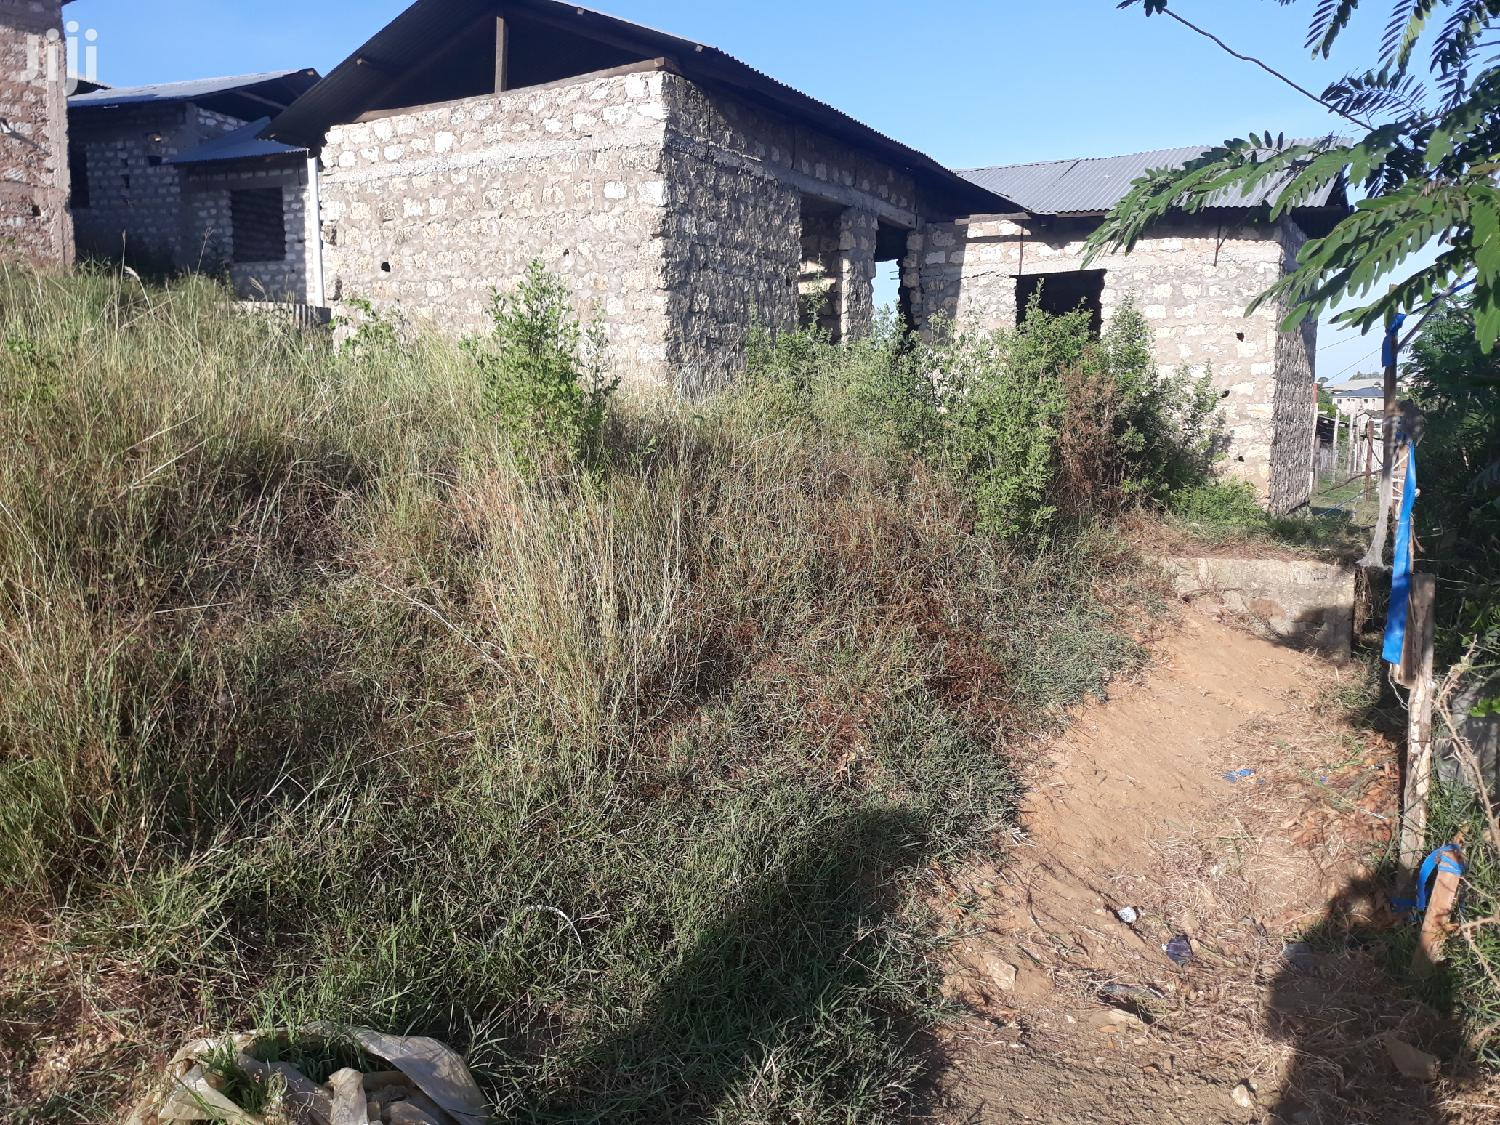 7 Bedroom House | Houses & Apartments For Sale for sale in Jomvu, Mombasa, Kenya